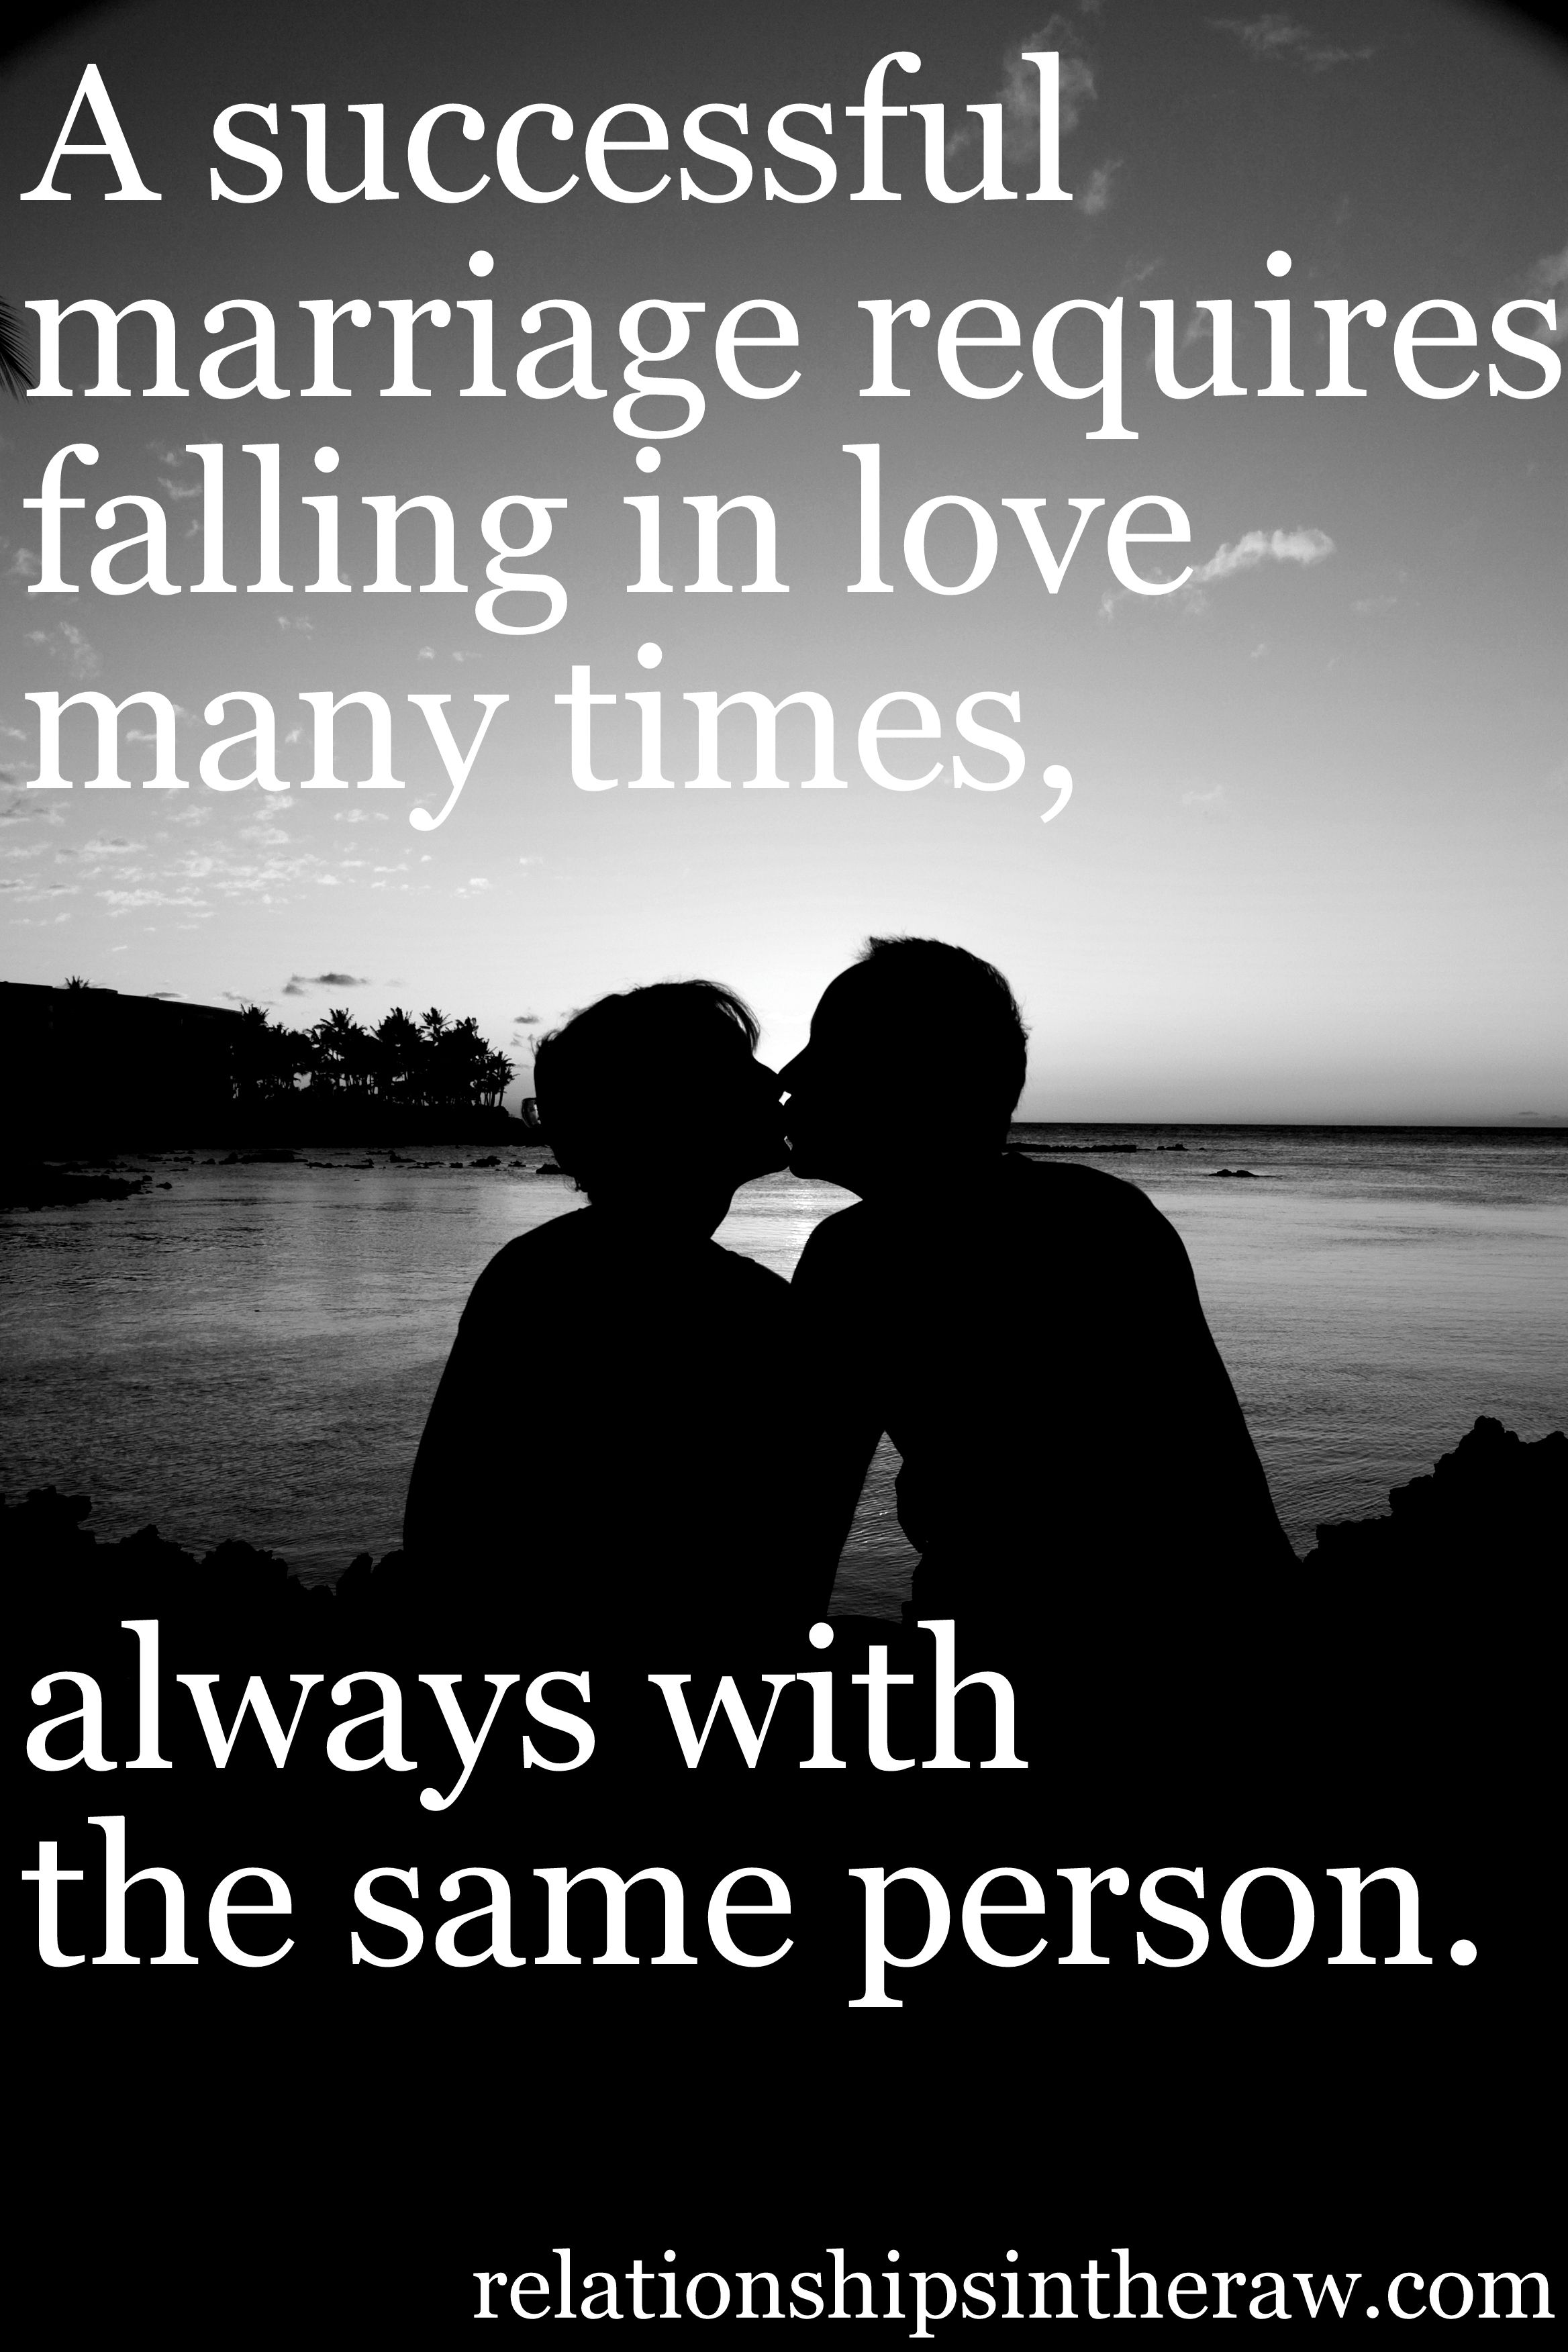 Quotes About Successful Marriage. QuotesGram